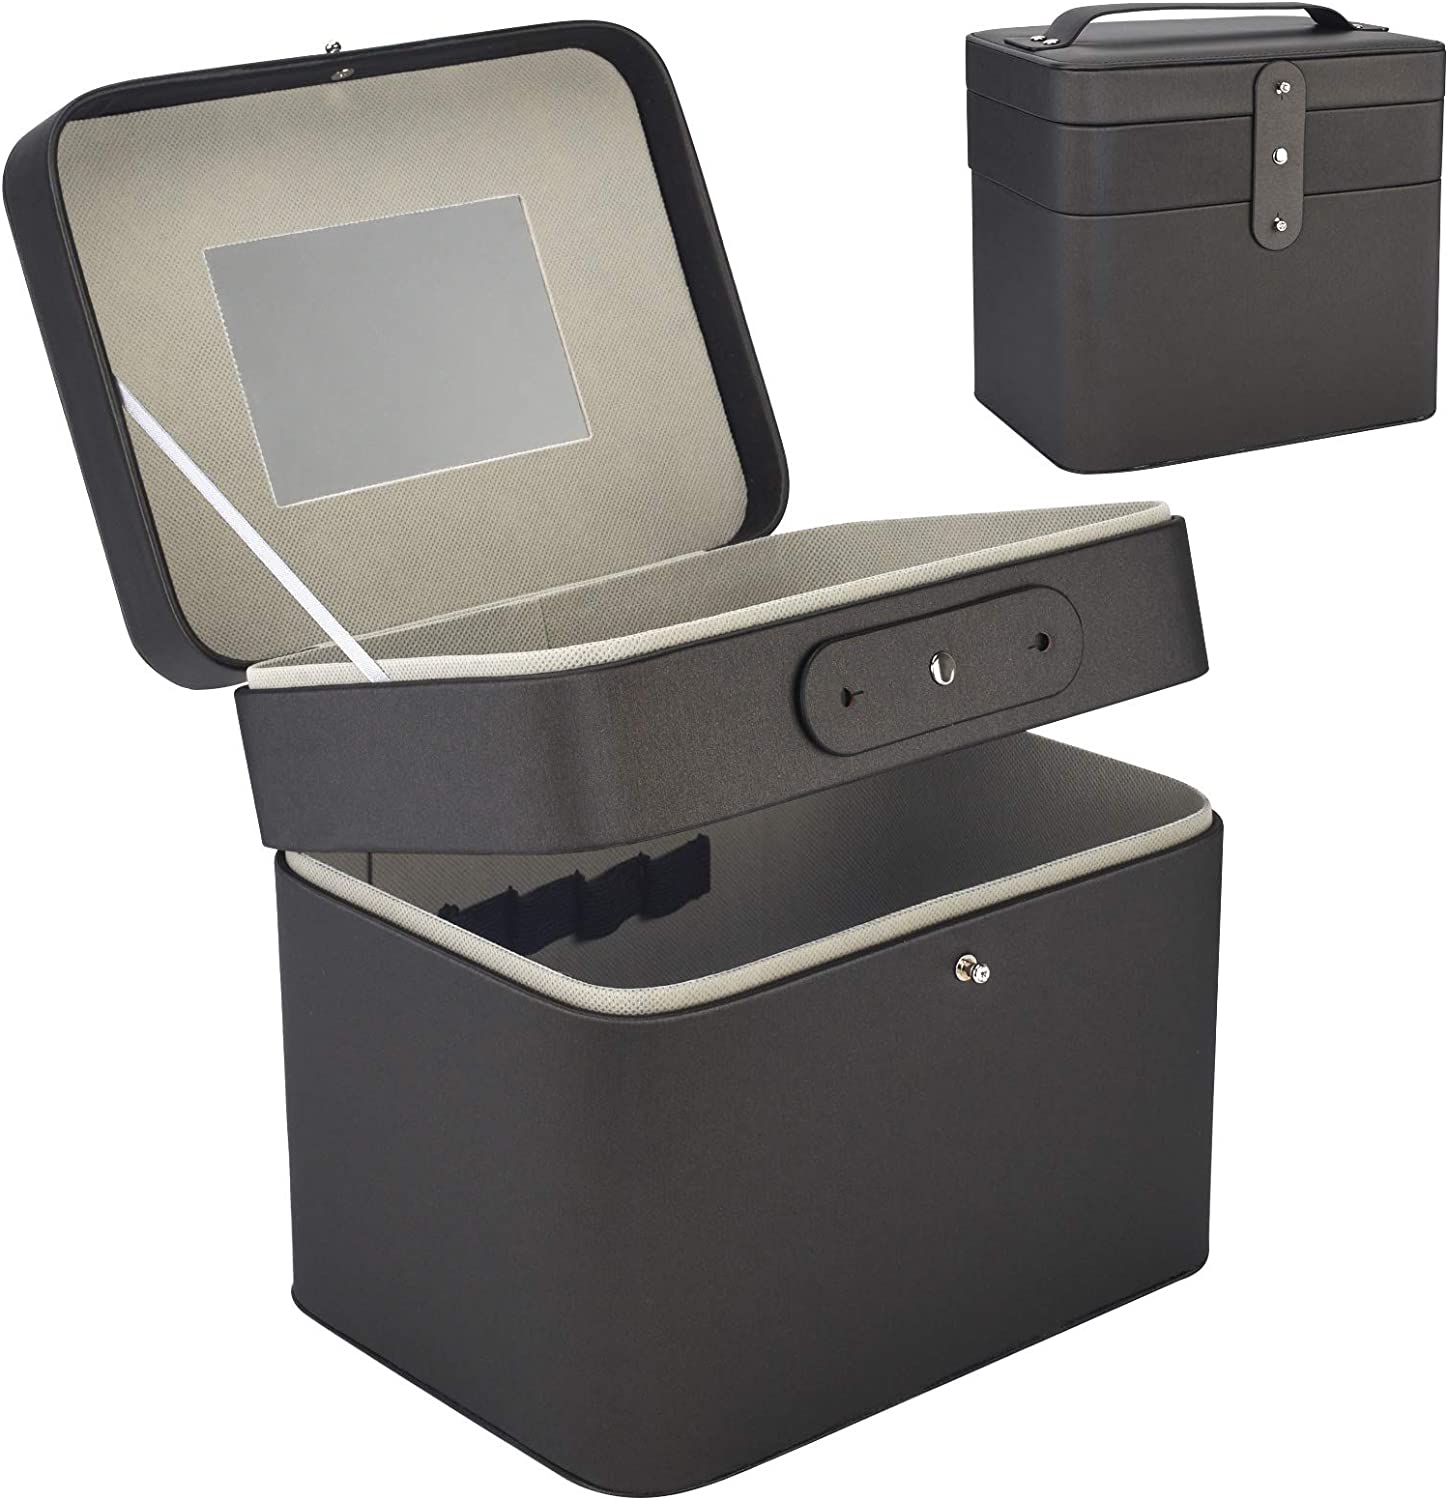 Jazzpuss Makeup Case Box Ranking integrated 1st place Organ Detroit Mall Mirror 3-Layer with